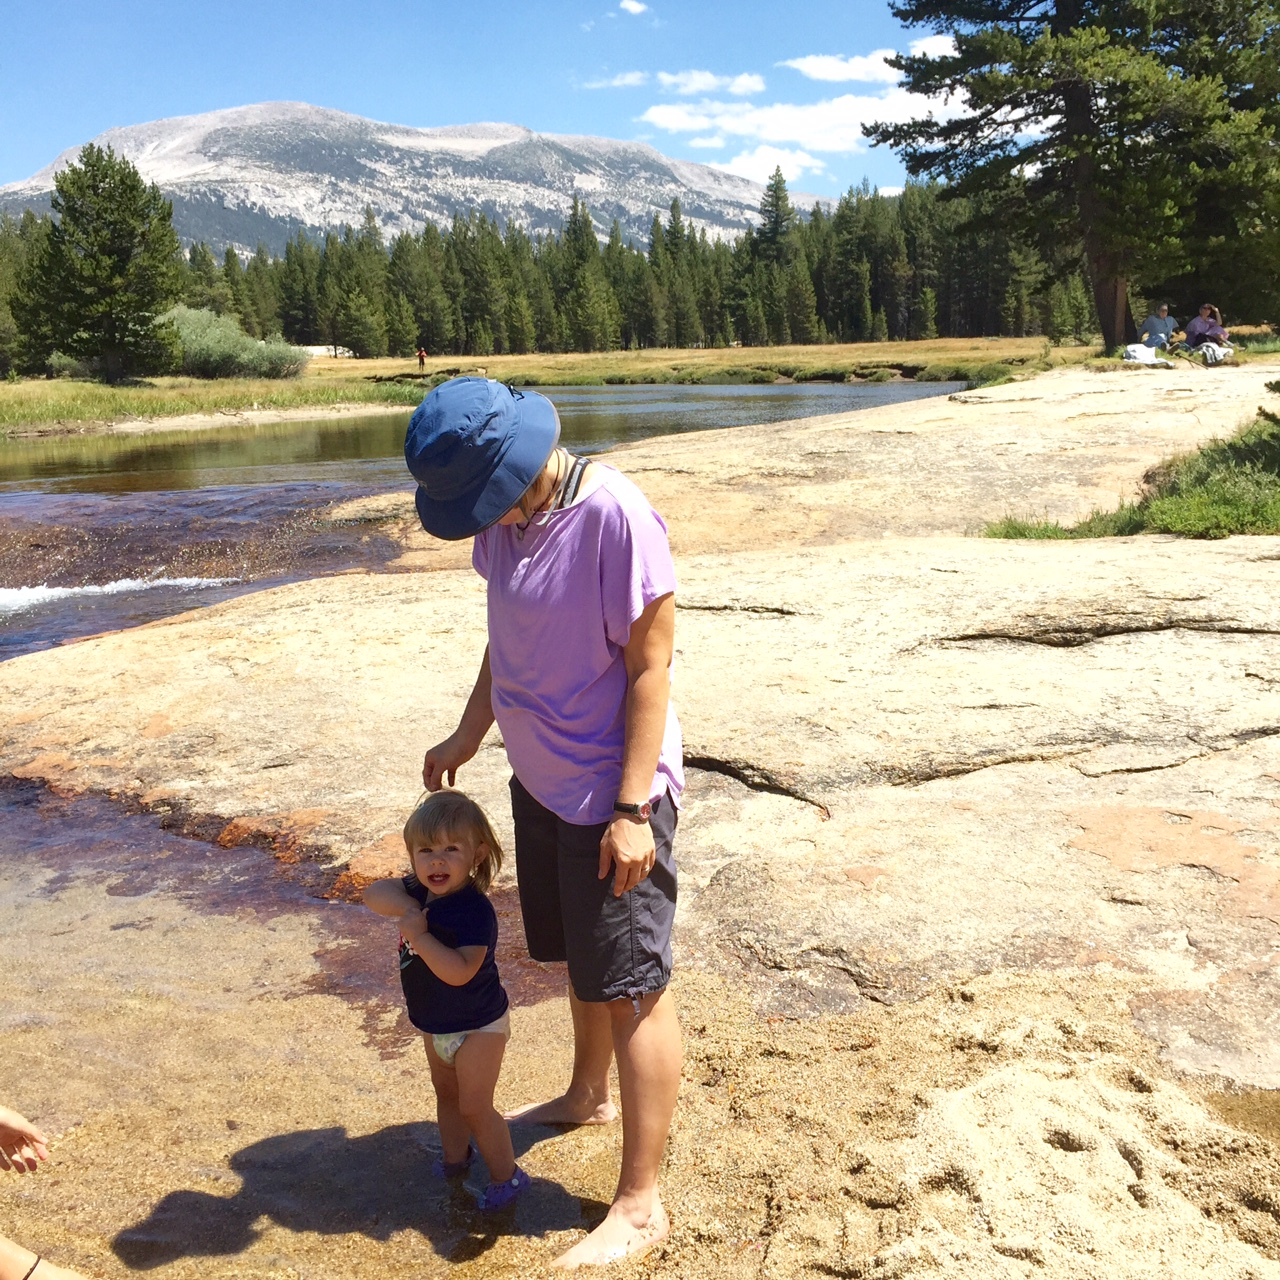 Toddlers have delicate skin. Don't forget to reapply sunscreen often, especially if they don't like hats. Mountain sunshine is powerful stuff.